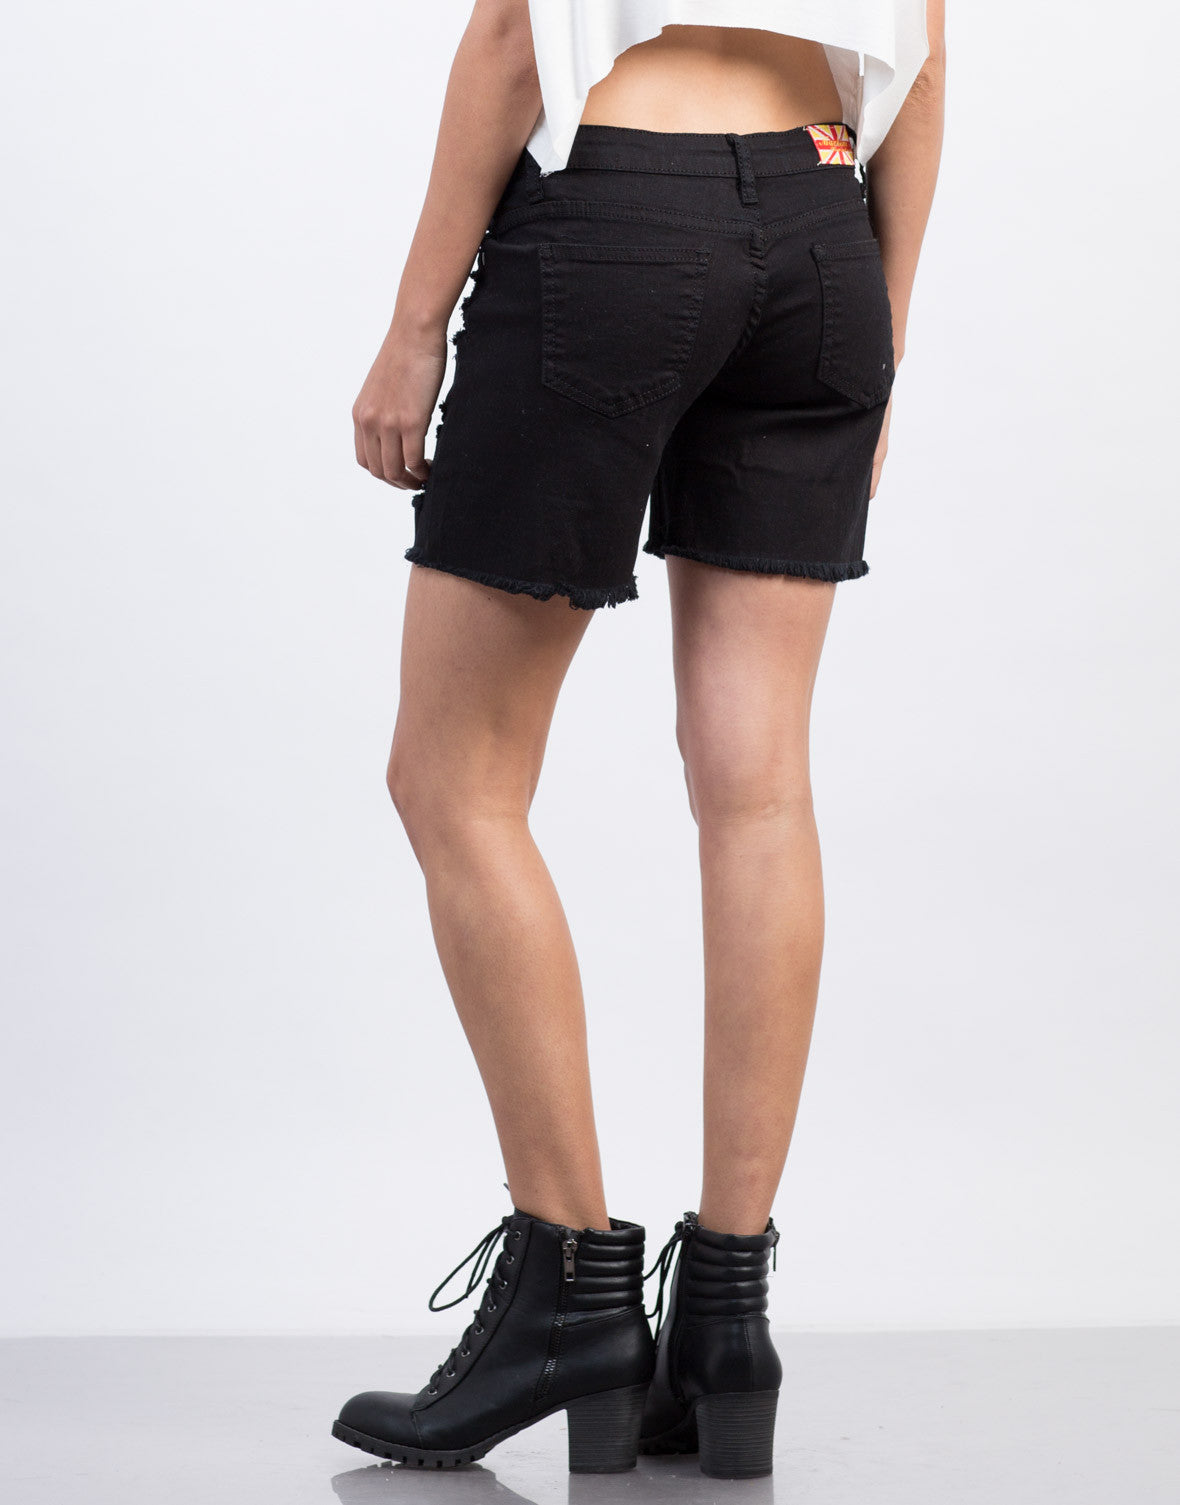 Back View of Black Destroyed Bermuda Shorts